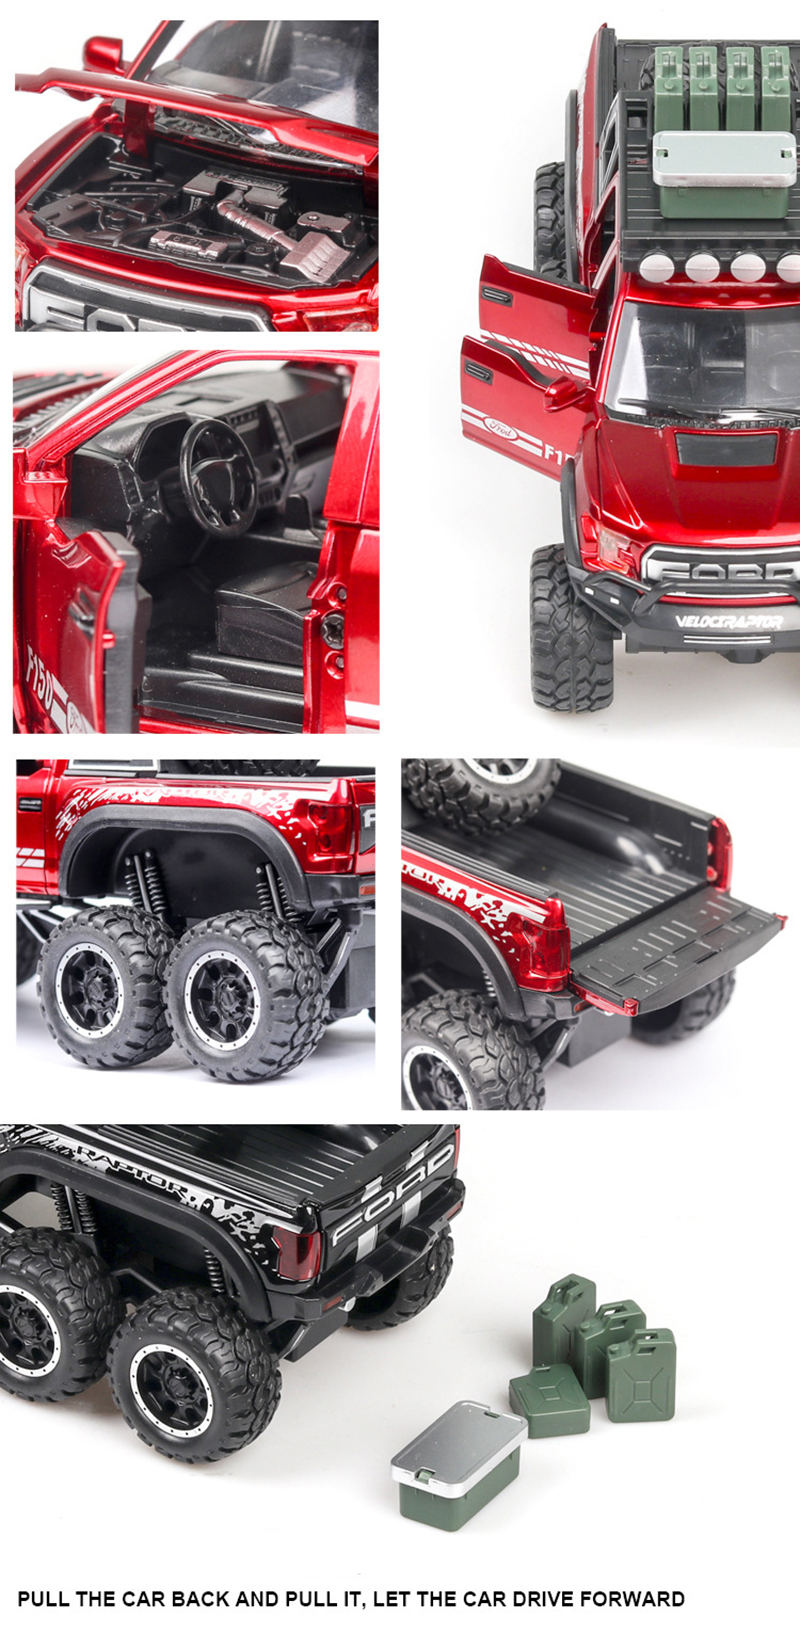 Ford F150 Raptor Pickup Truck Model Car with Sound and Lights 8